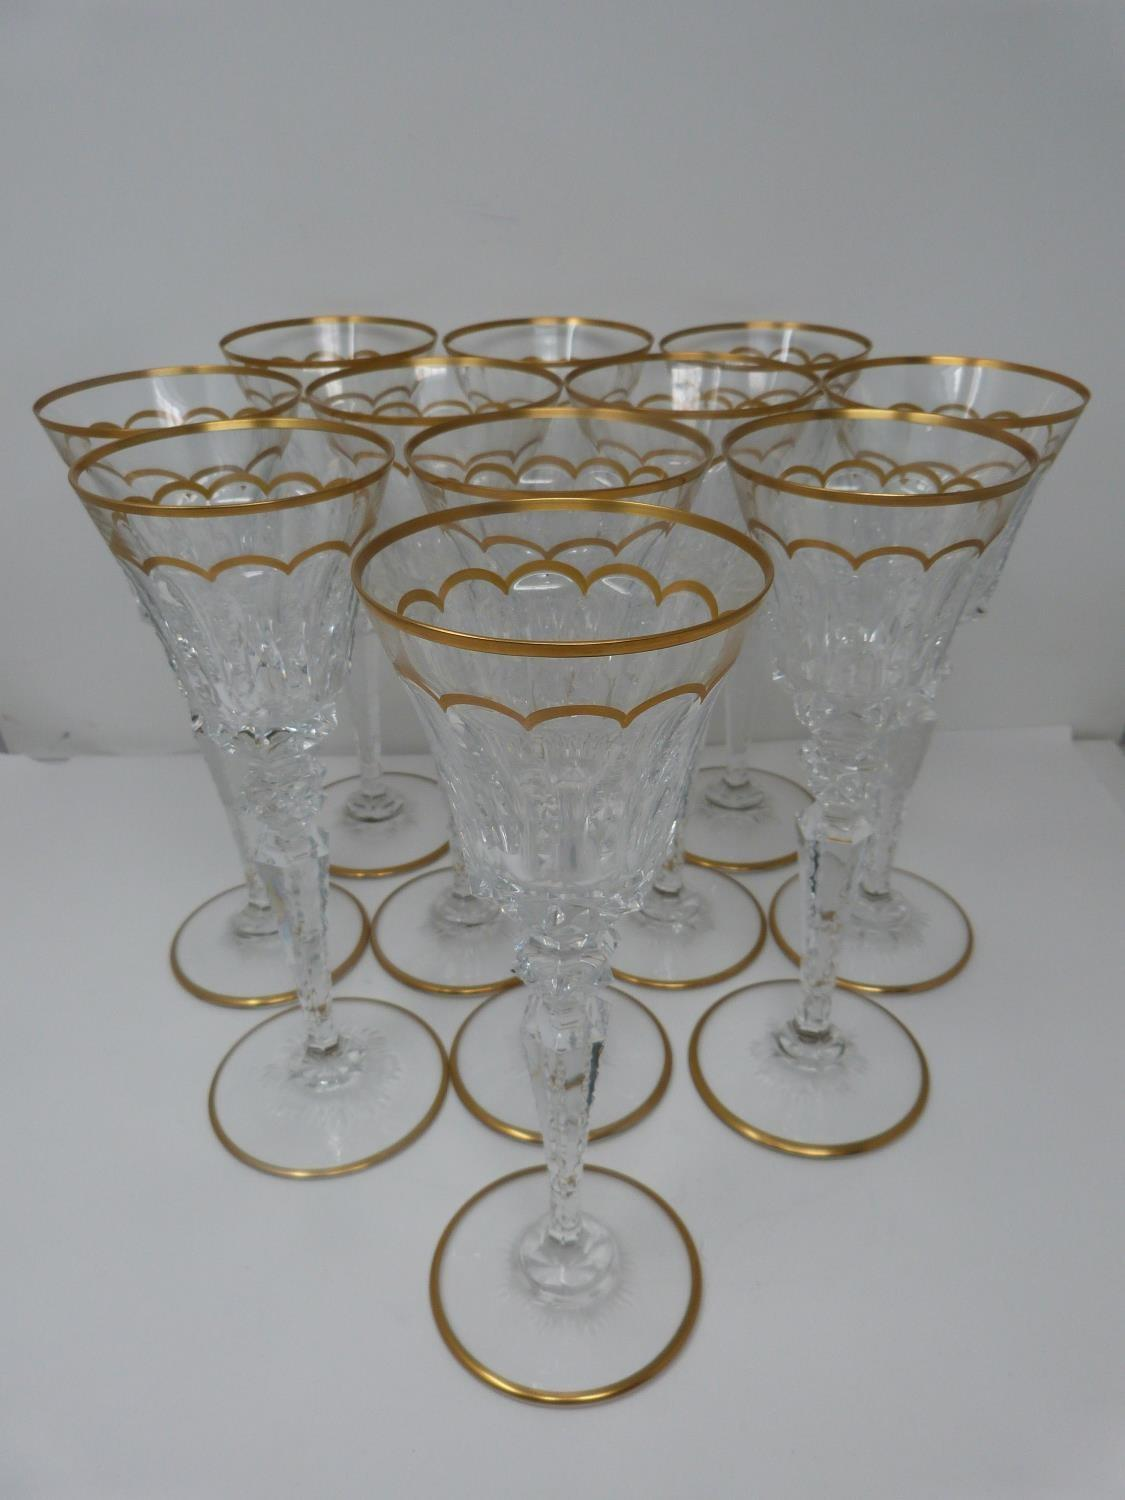 A set of eleven St Louis Excellence crystal large wine glasses, with gilded scalloped detailing